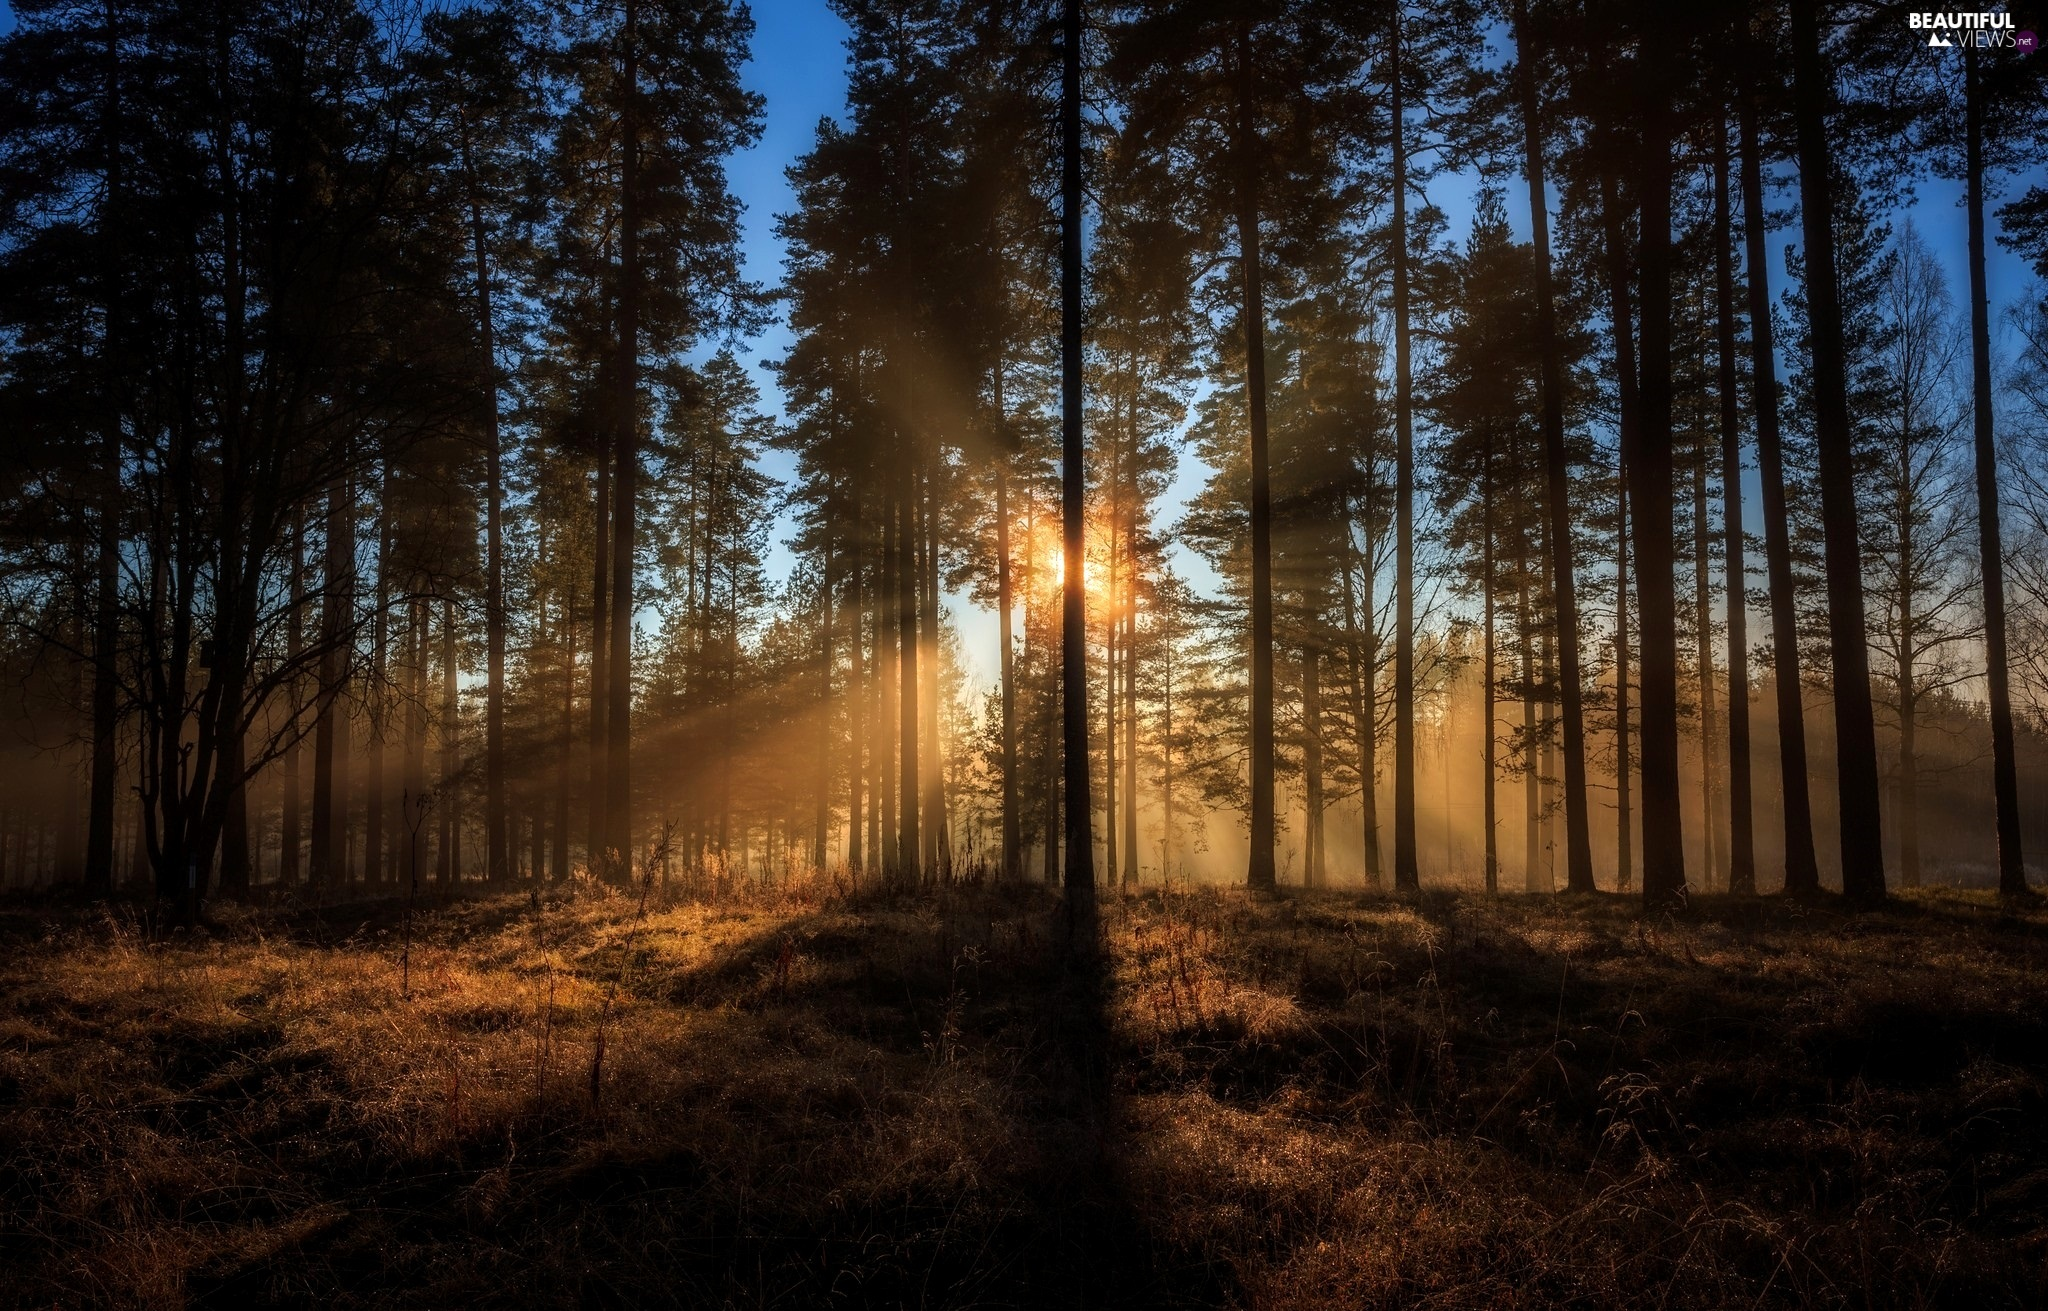 light breaking through sky, forest, trees, viewes